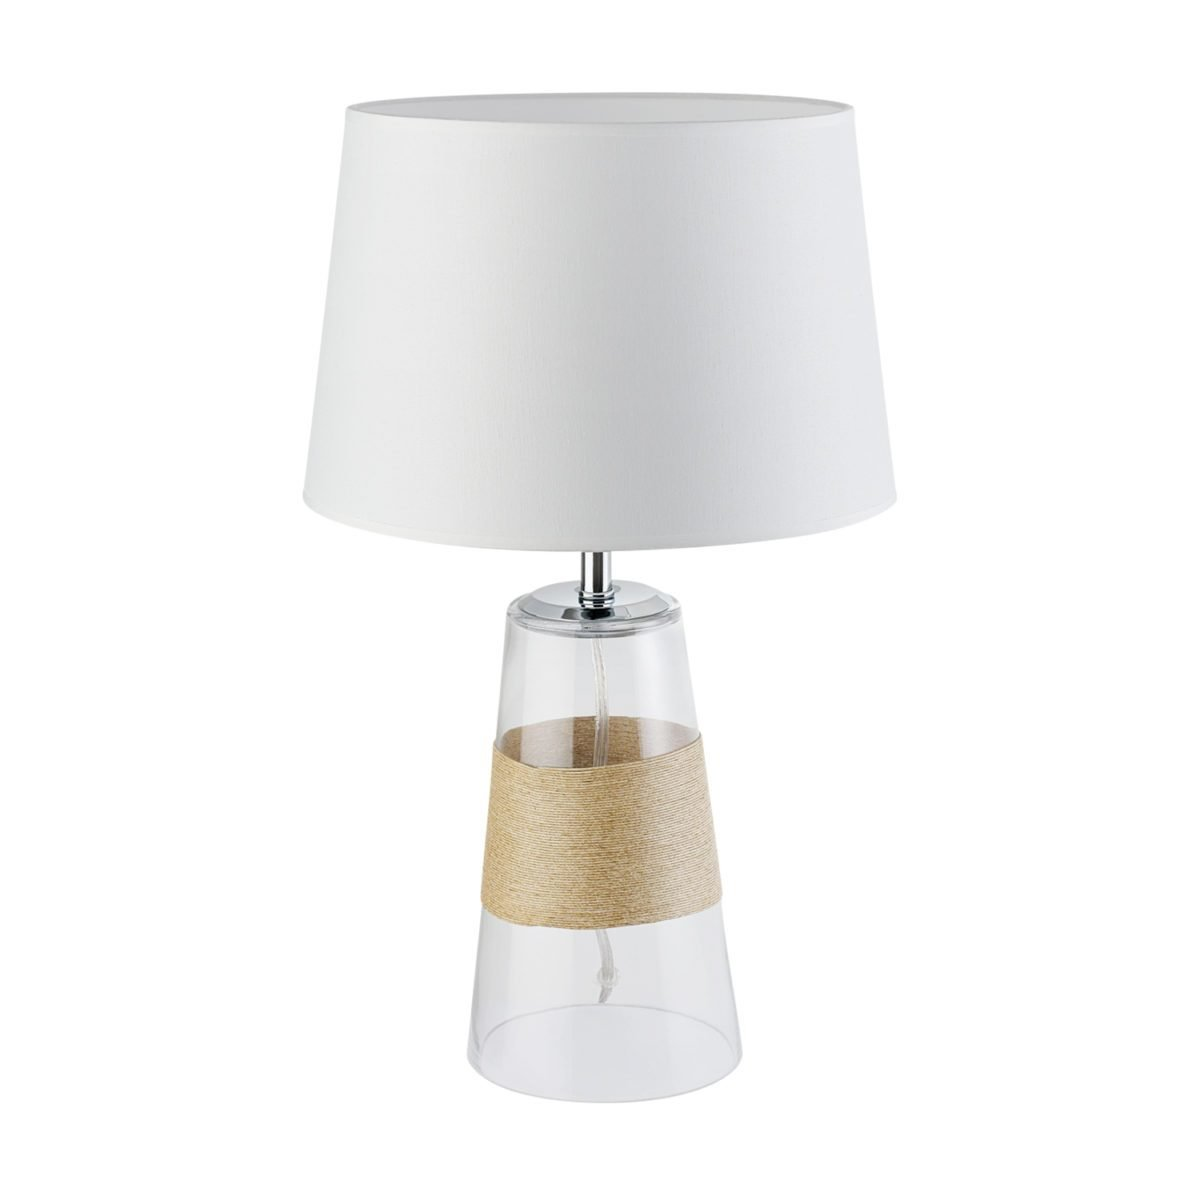 Best Side Table Lamps For Bedroom Including Light Accents Touch Brushed Oregonuforeview With Pictures